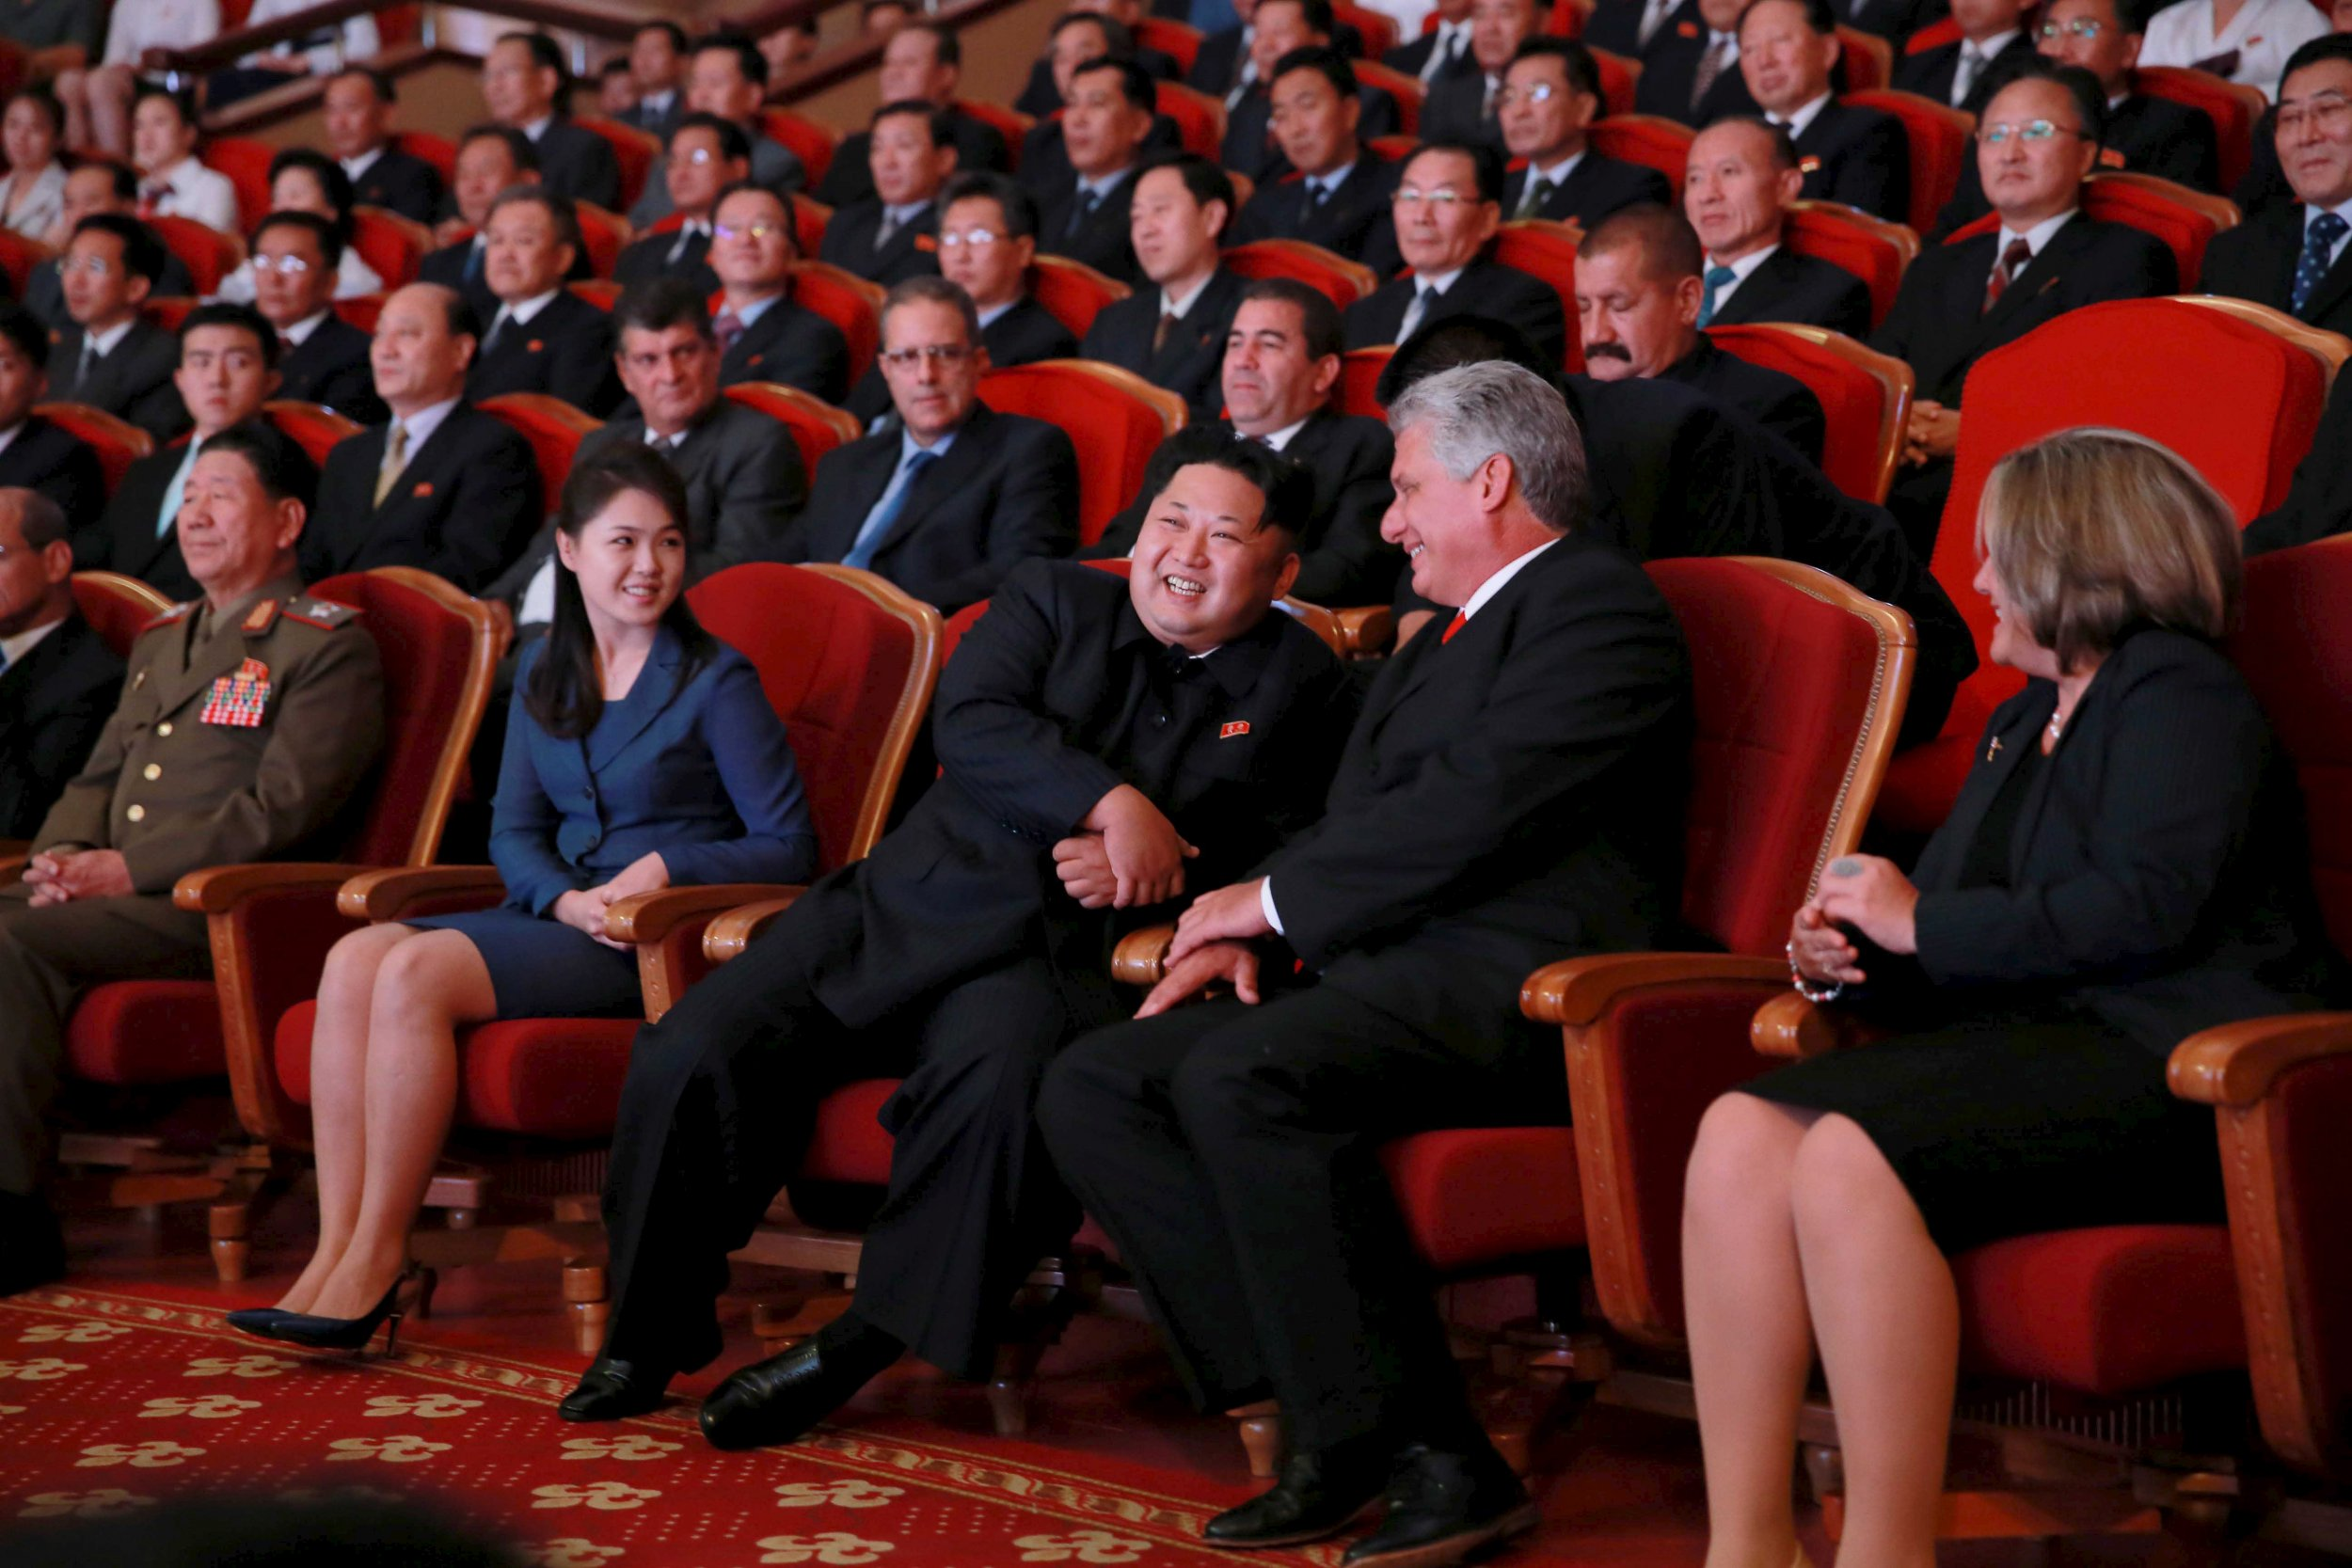 Even Kim Jong Un S Wife Came Out Of Hiding To Celebrate North Korea S Missile Test